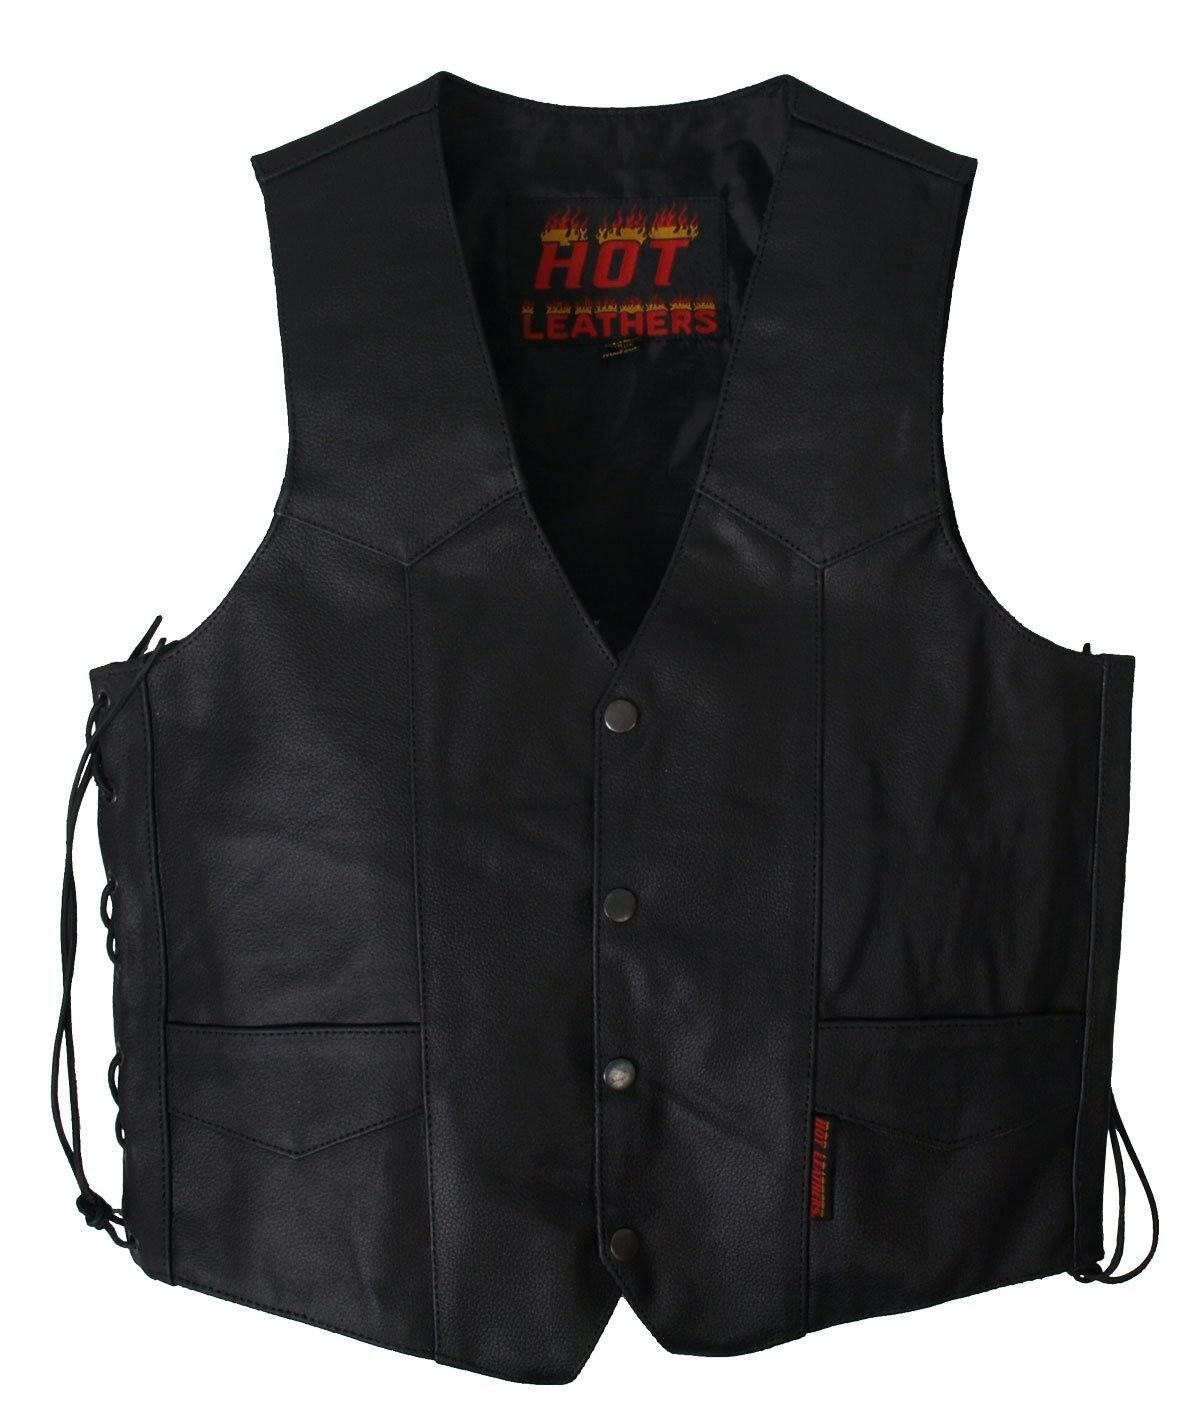 Black, XXXXX-Large Hot Leathers Mens Heavy Weight Leather Vest